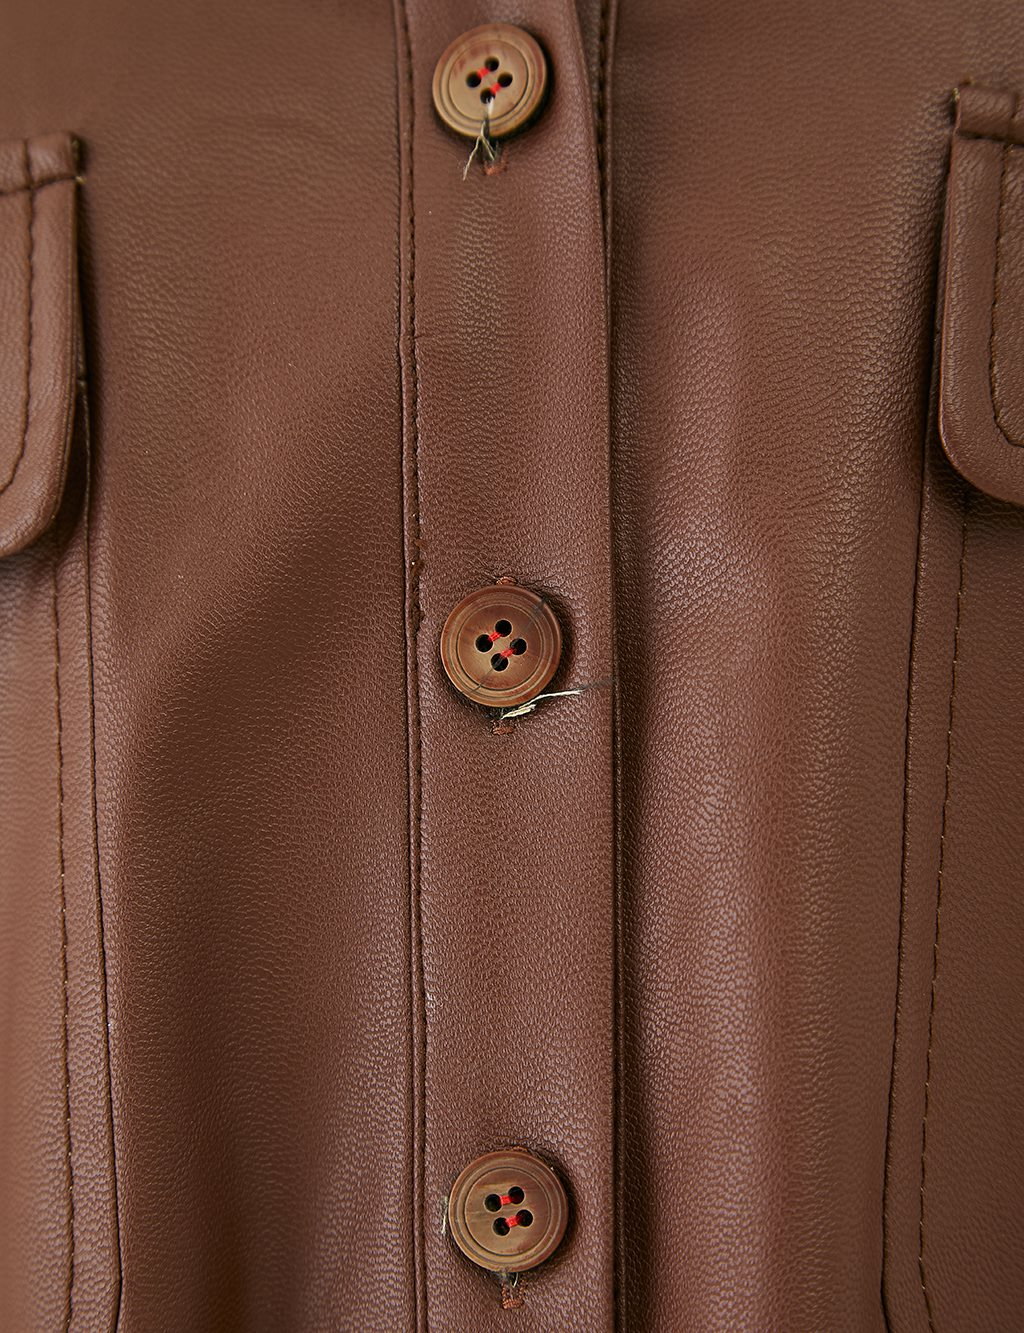 Embroidered Back Detailed Leather Tunic with Double Pocket A20 21152 Brown